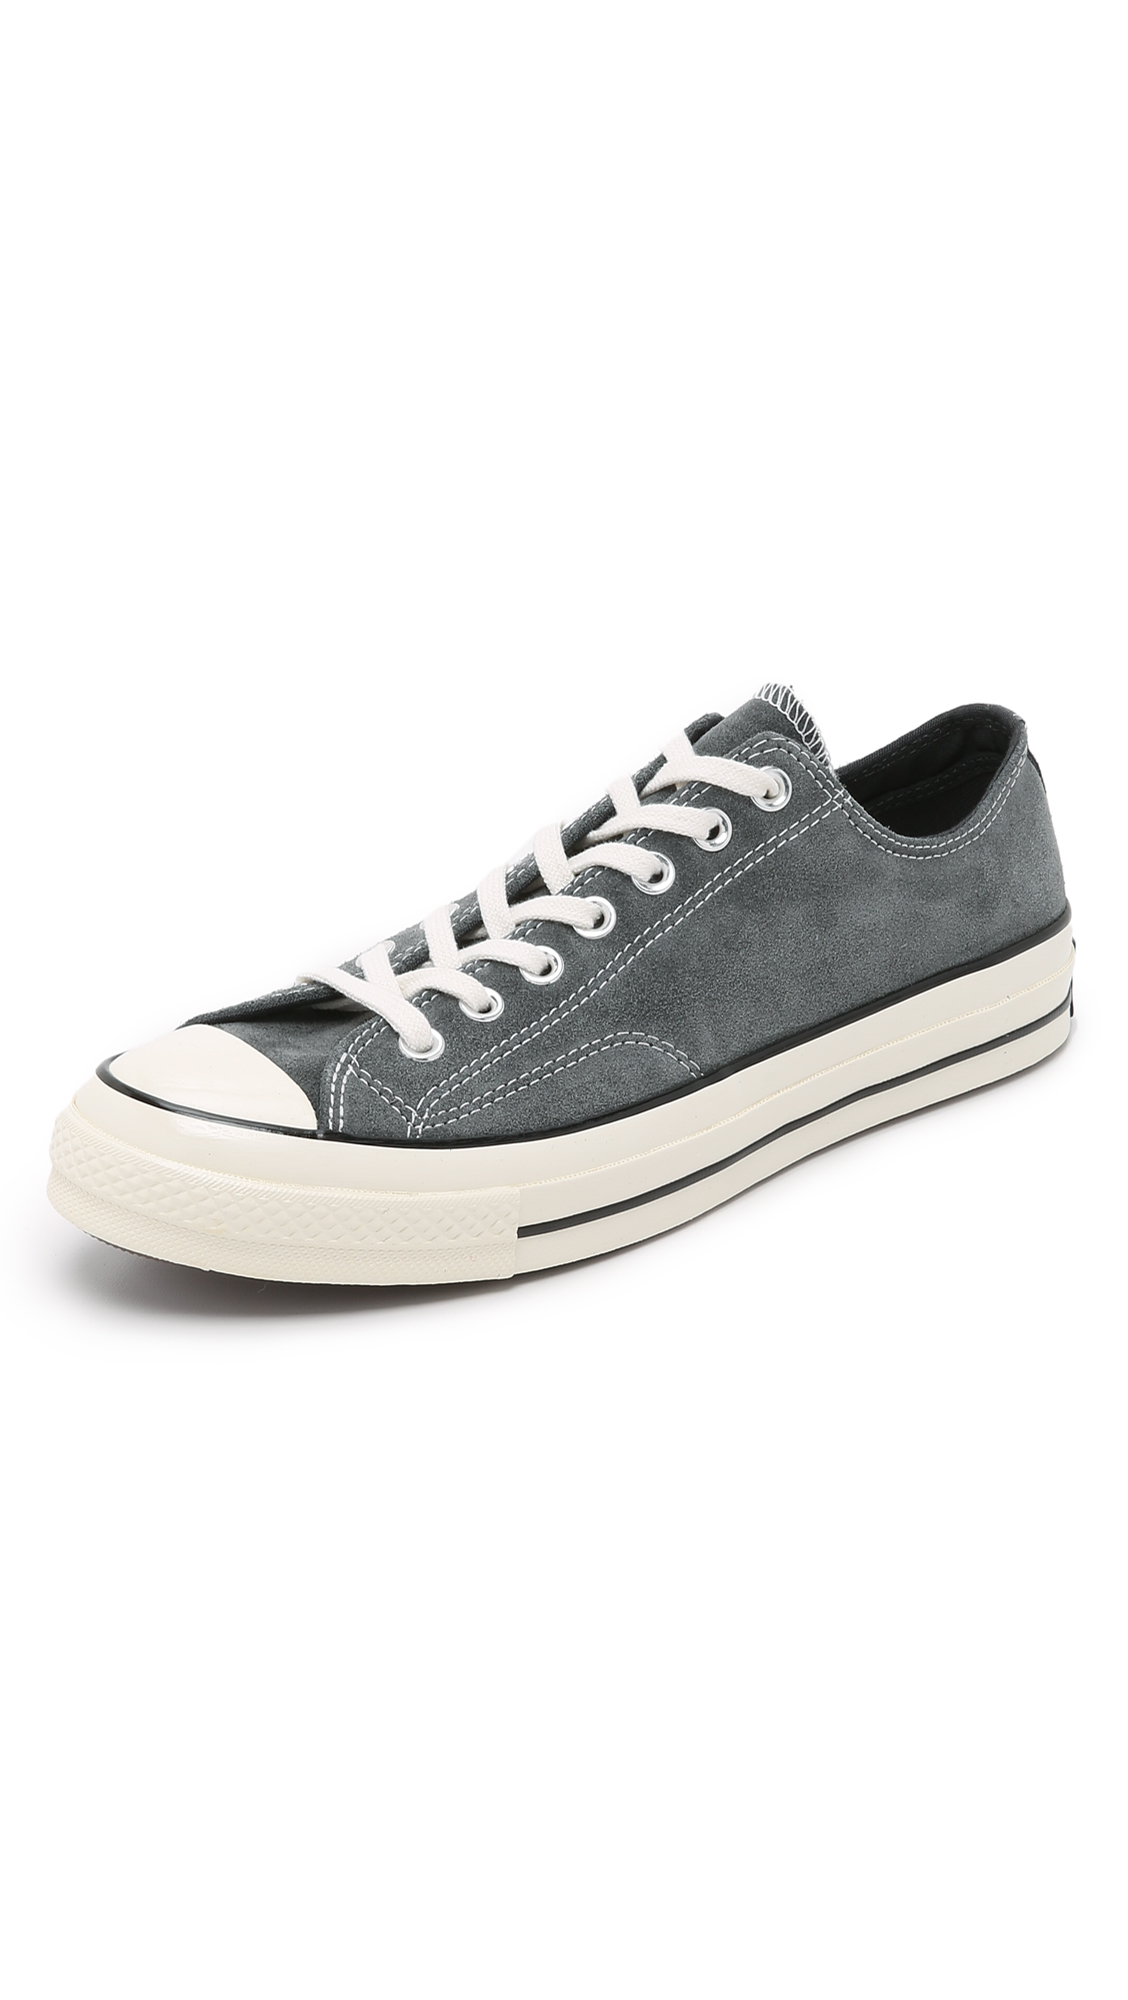 Converse Chuck Taylor All Star 70s Suede Sneakers In Gray